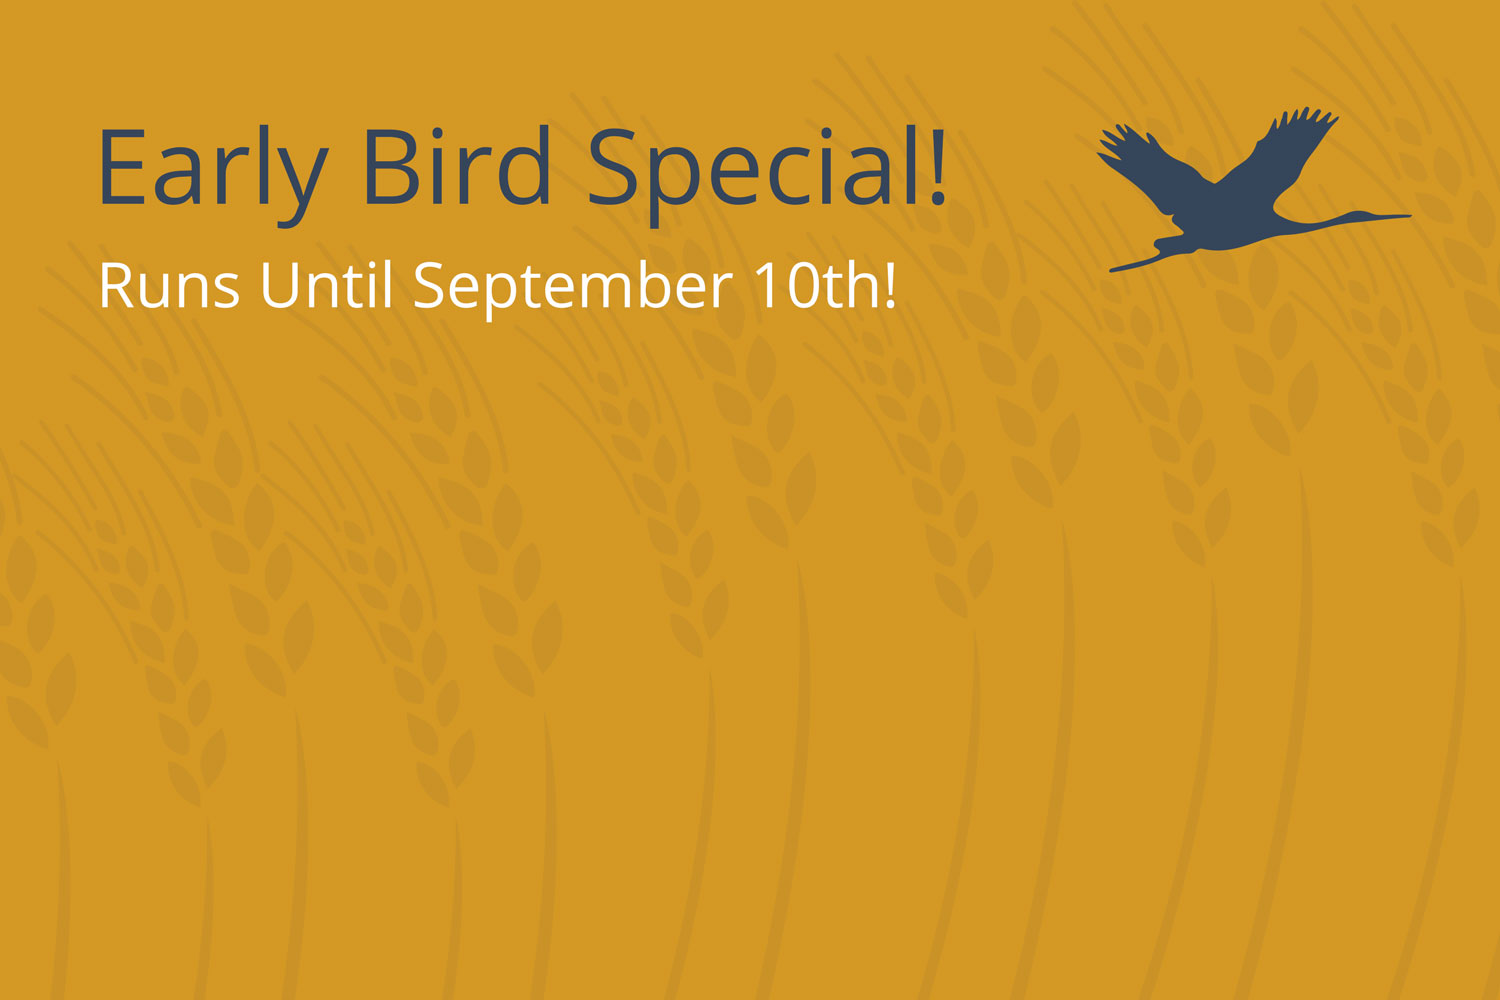 Early Bird Registration Extended Until September 10th!